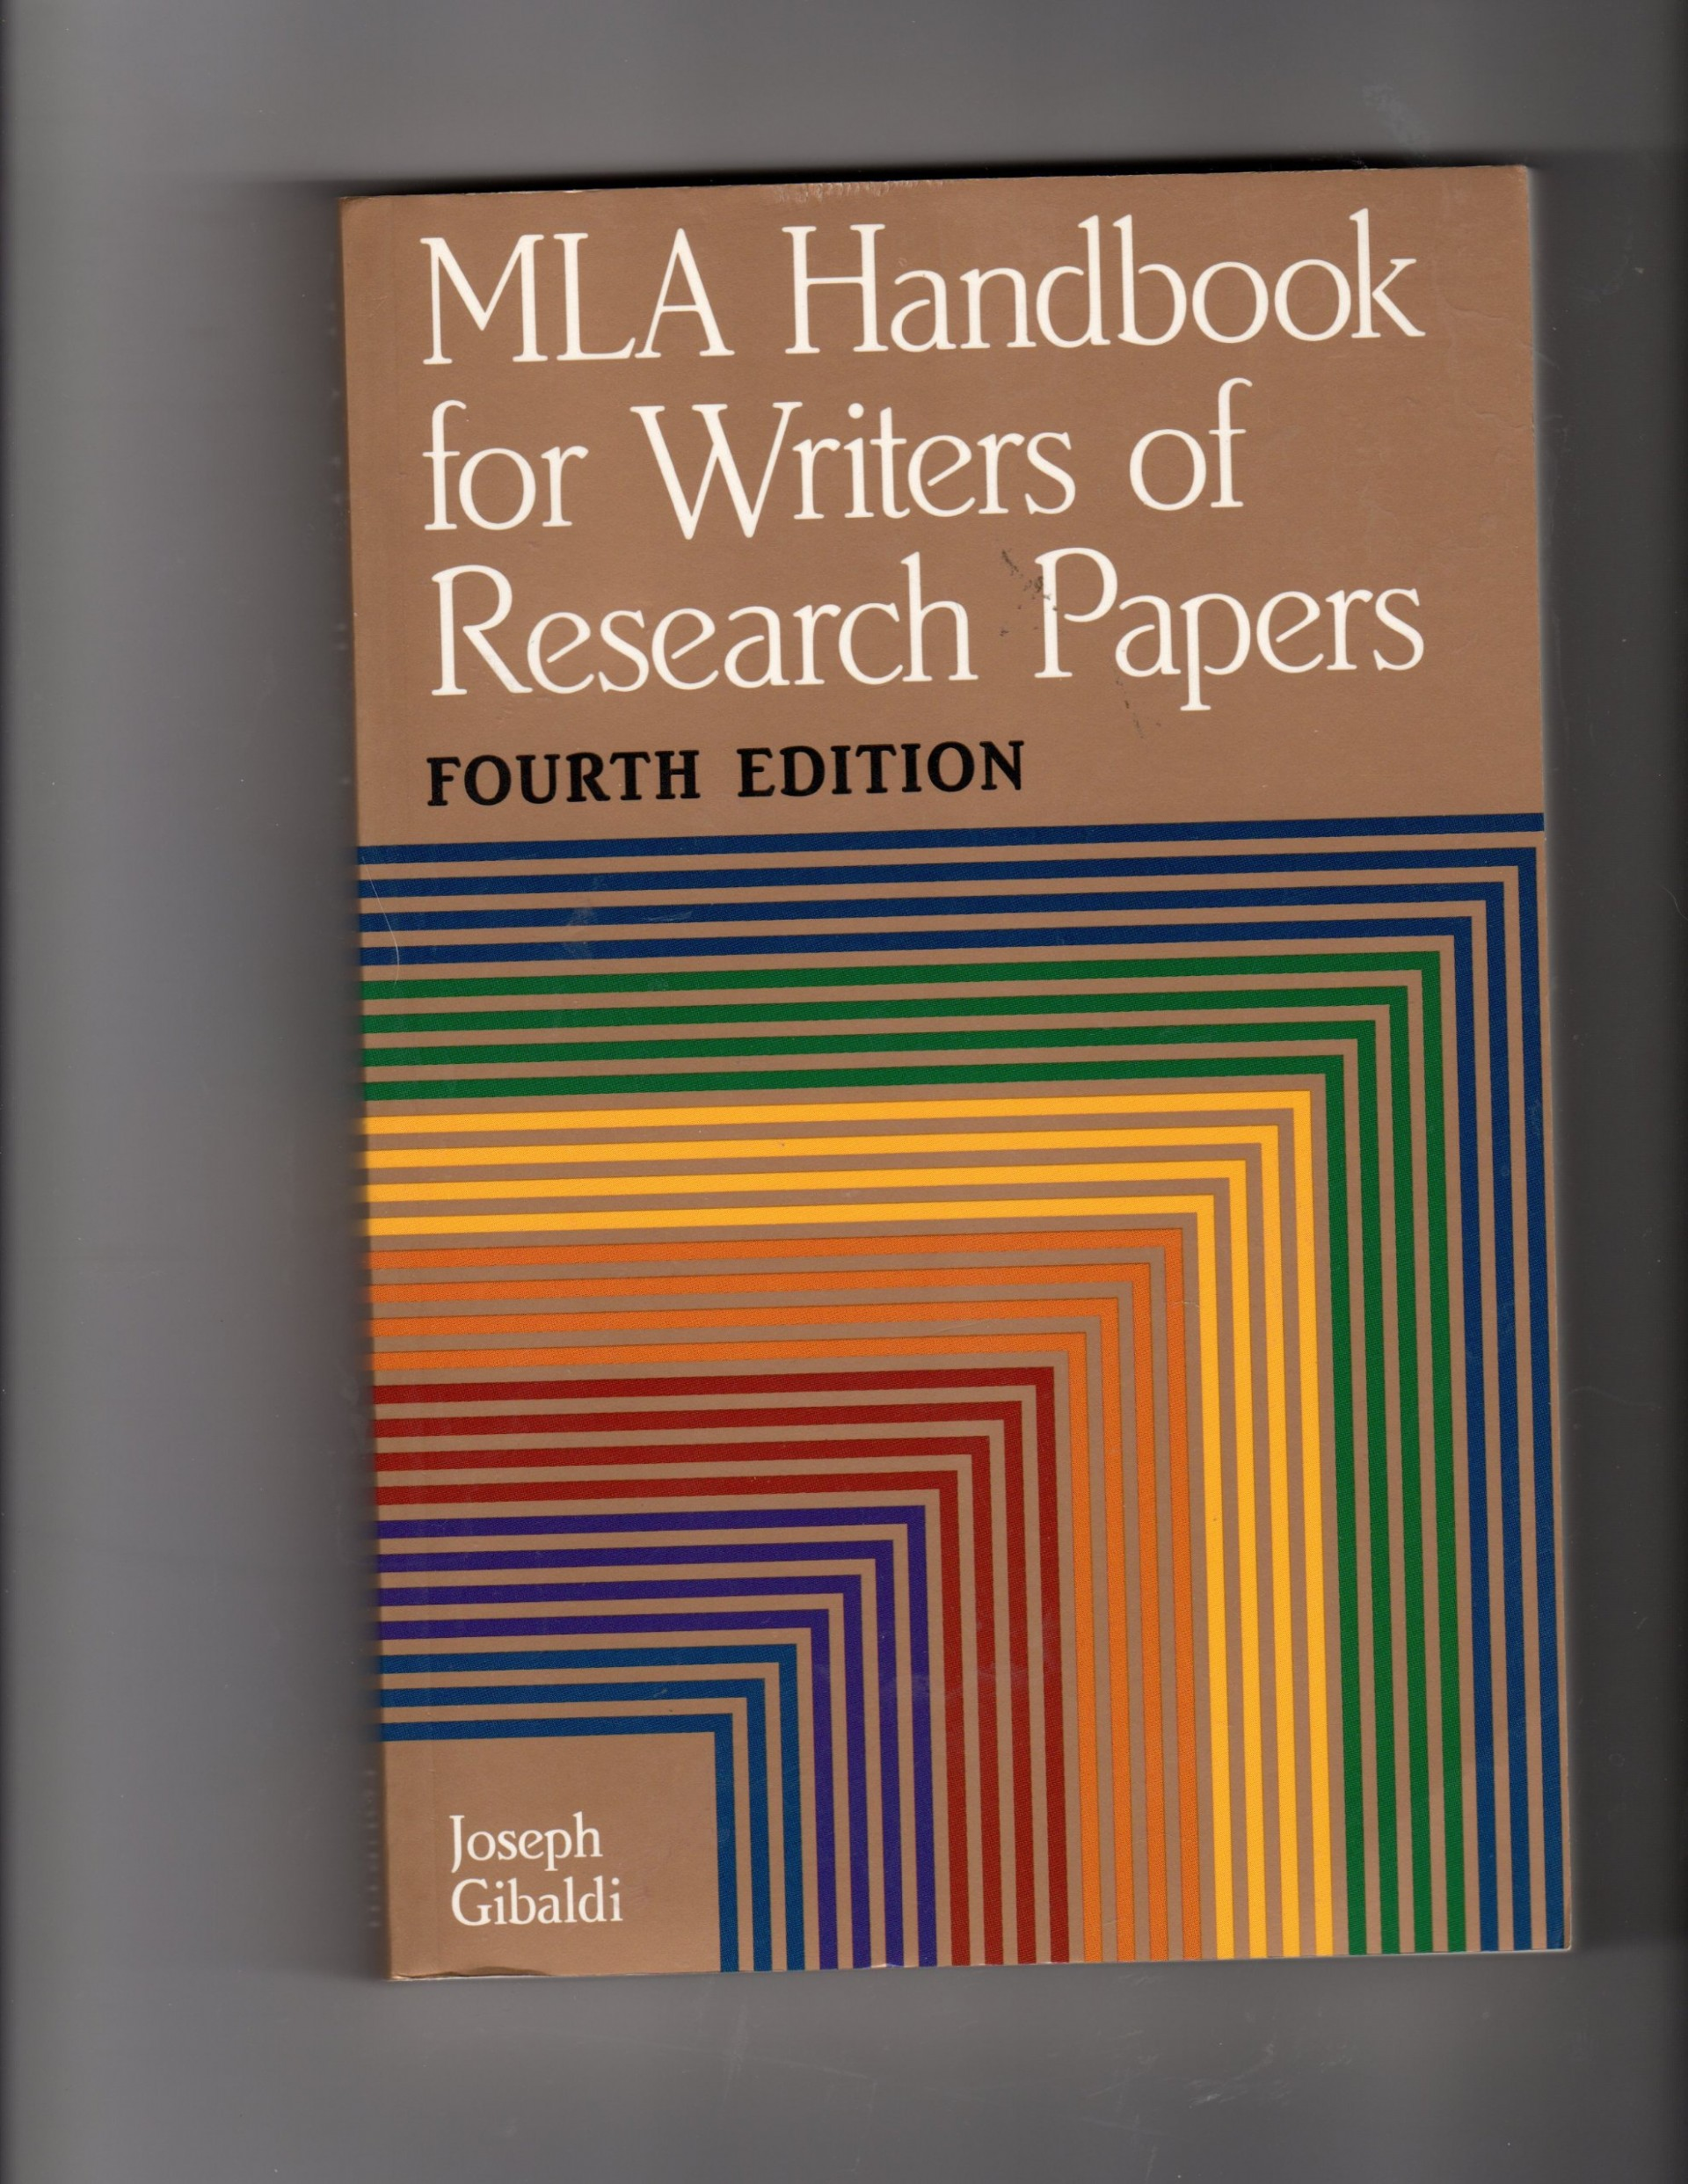 002 Research Paper 91or7esc2gl Mla Handbook For Writers Impressive Of Papers 7th Edition 8th Pdf Free Download Joseph Gibaldi 6th 1920